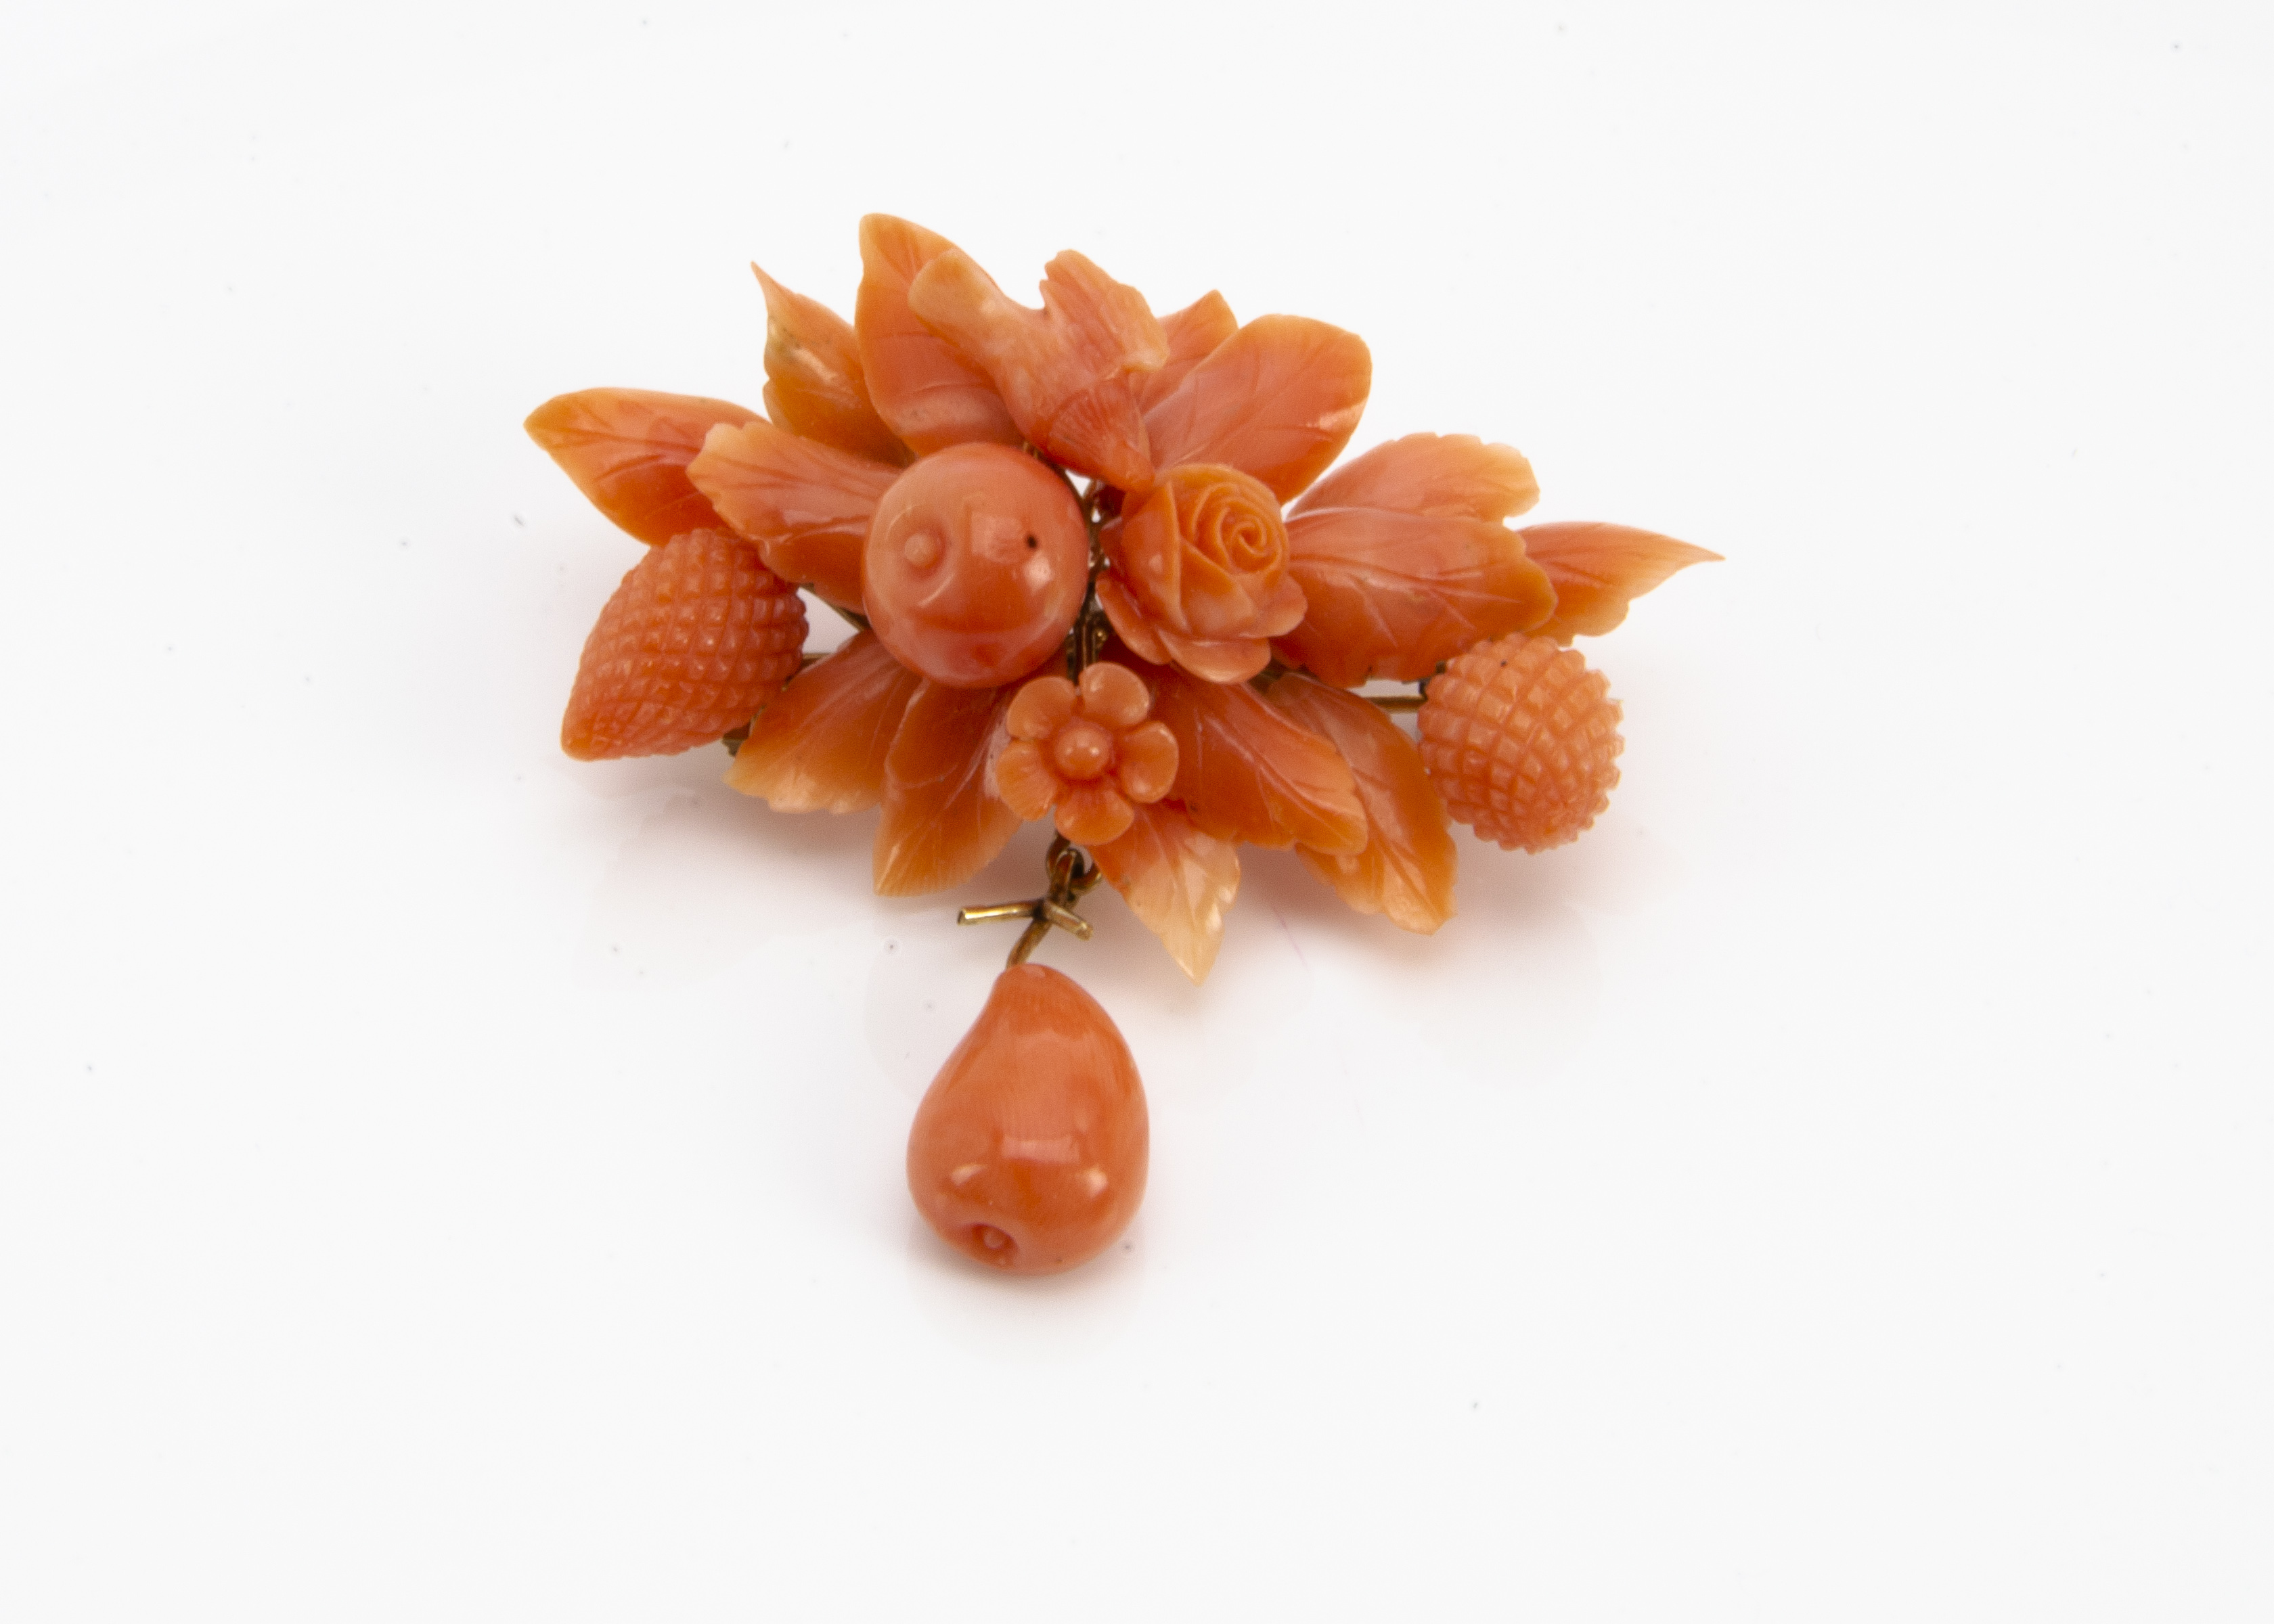 Lot 256 - A 19th Century Italian coral brooch, the floral and fruit carved coral surmounted by a small